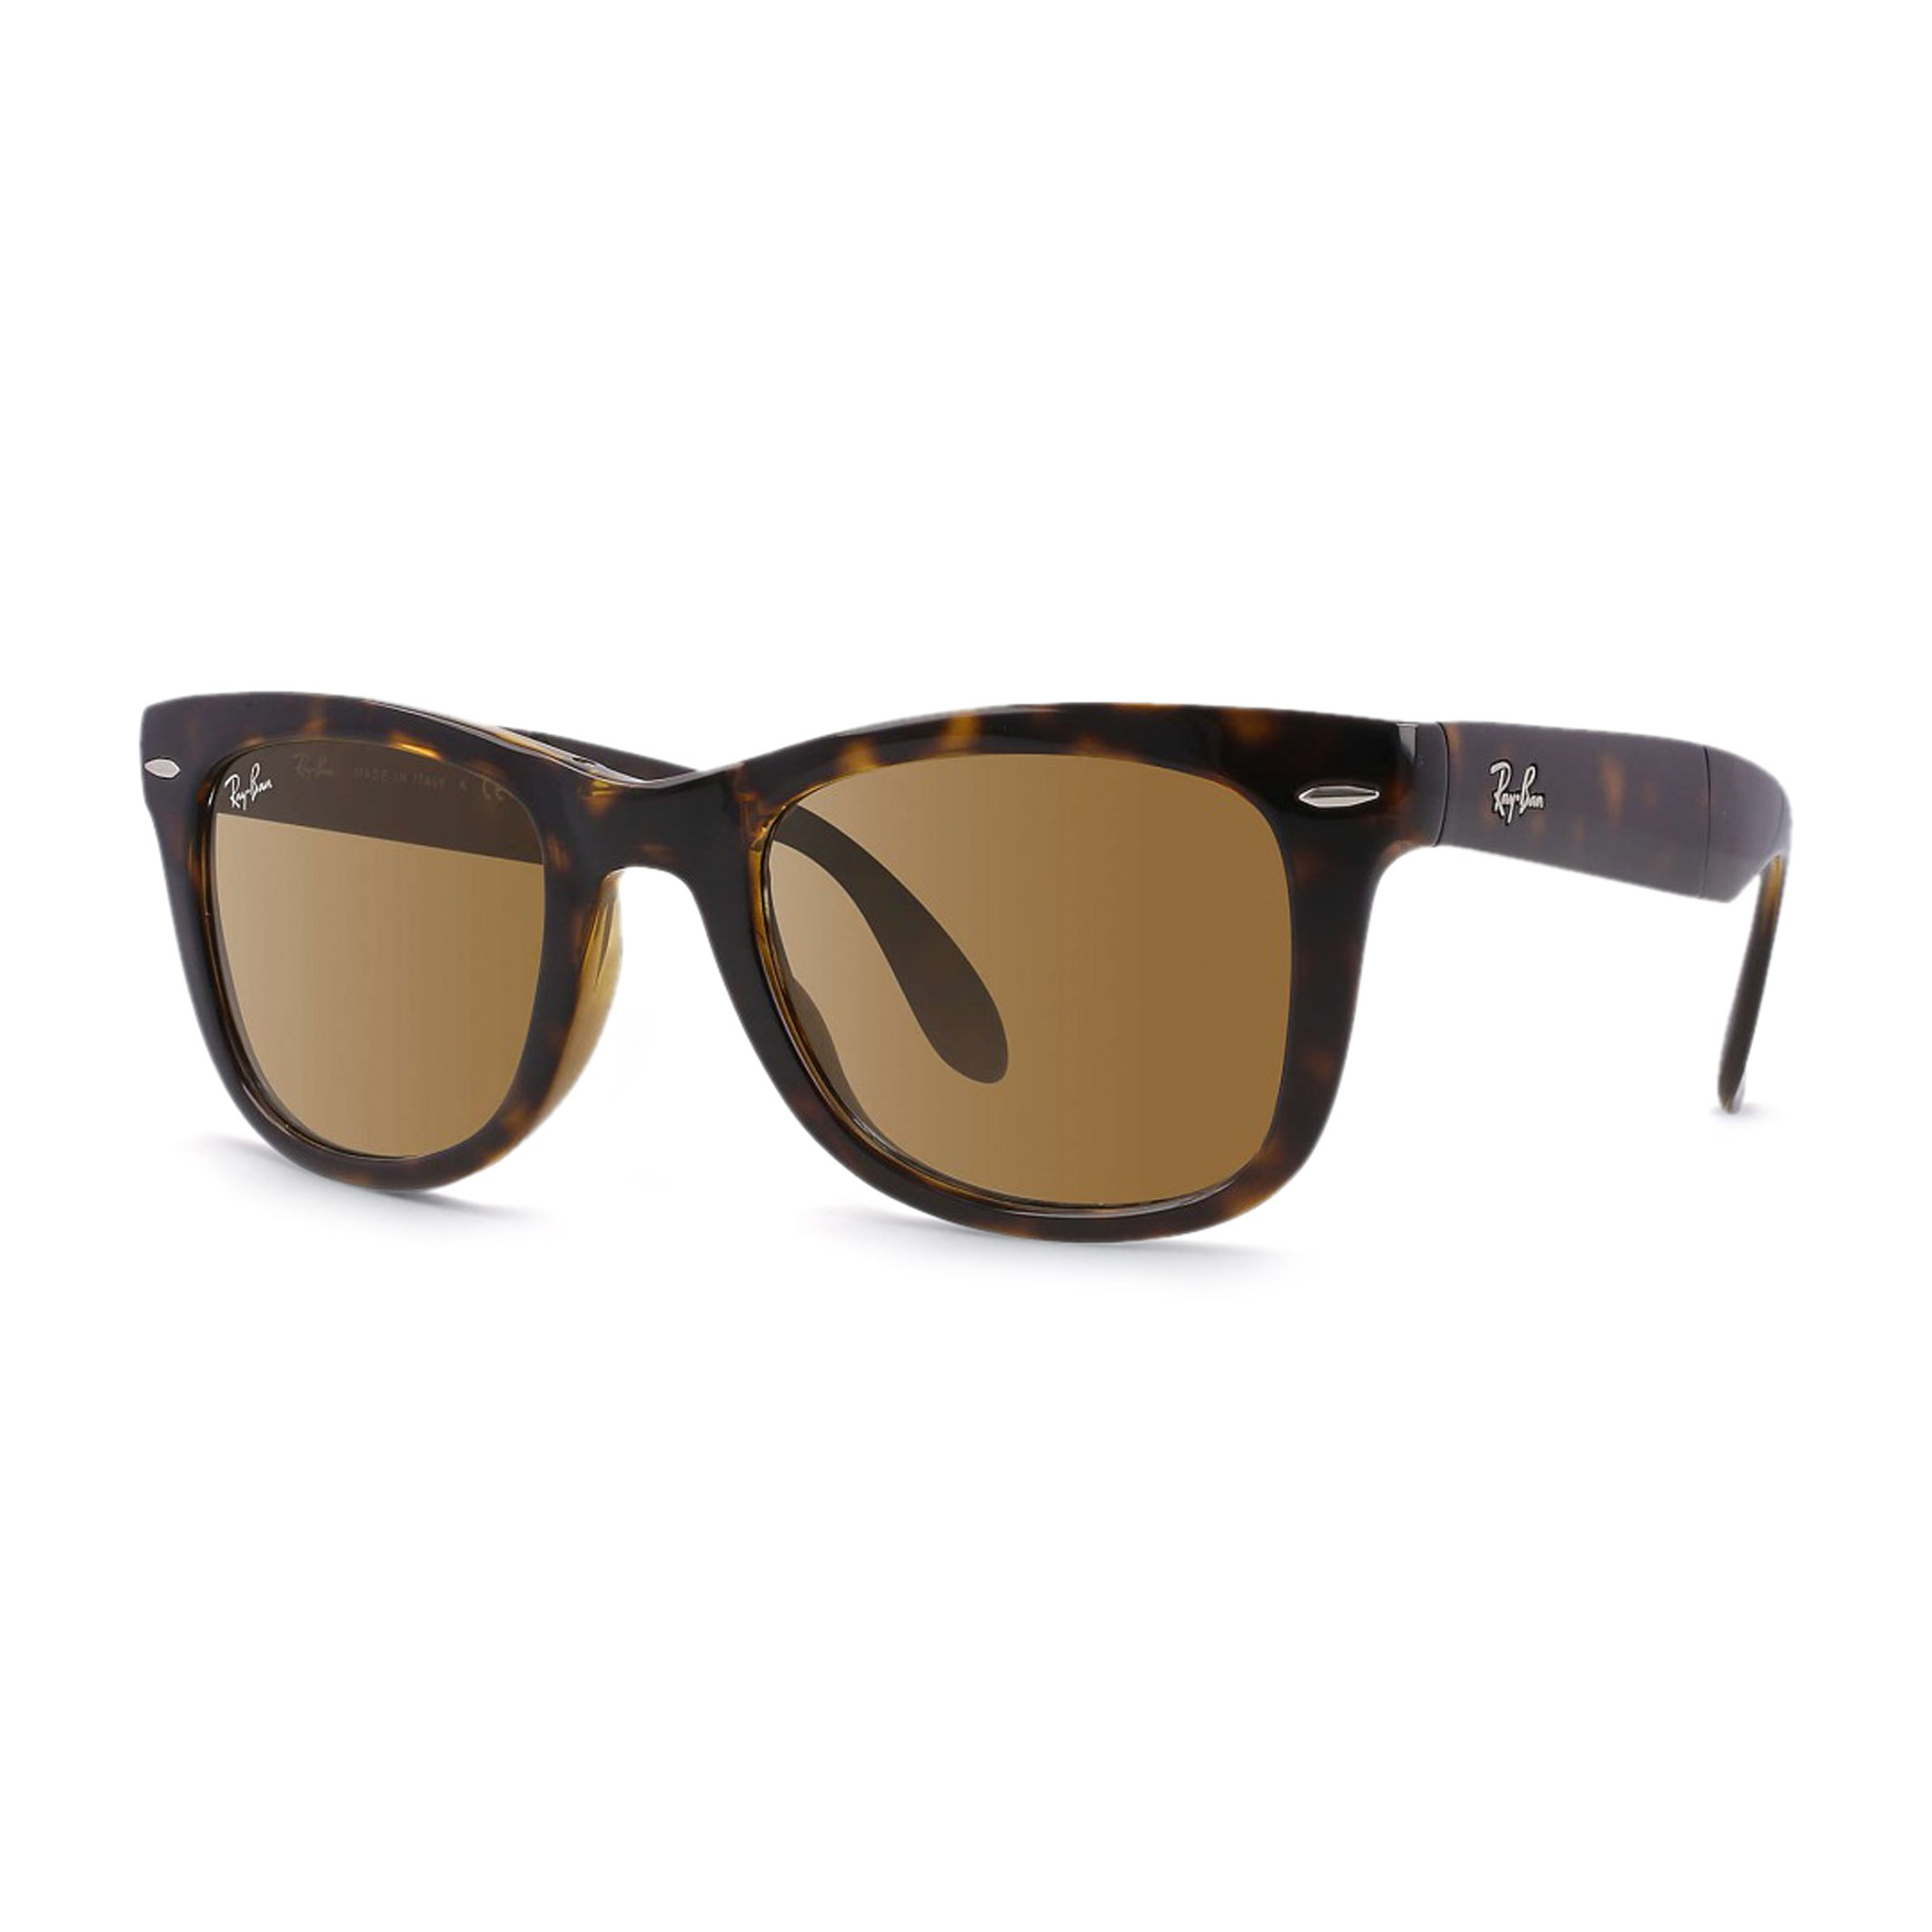 Ray-Ban Unisex Sunglasses Various Colours 0RB4105 - brown-2 NOSIZE